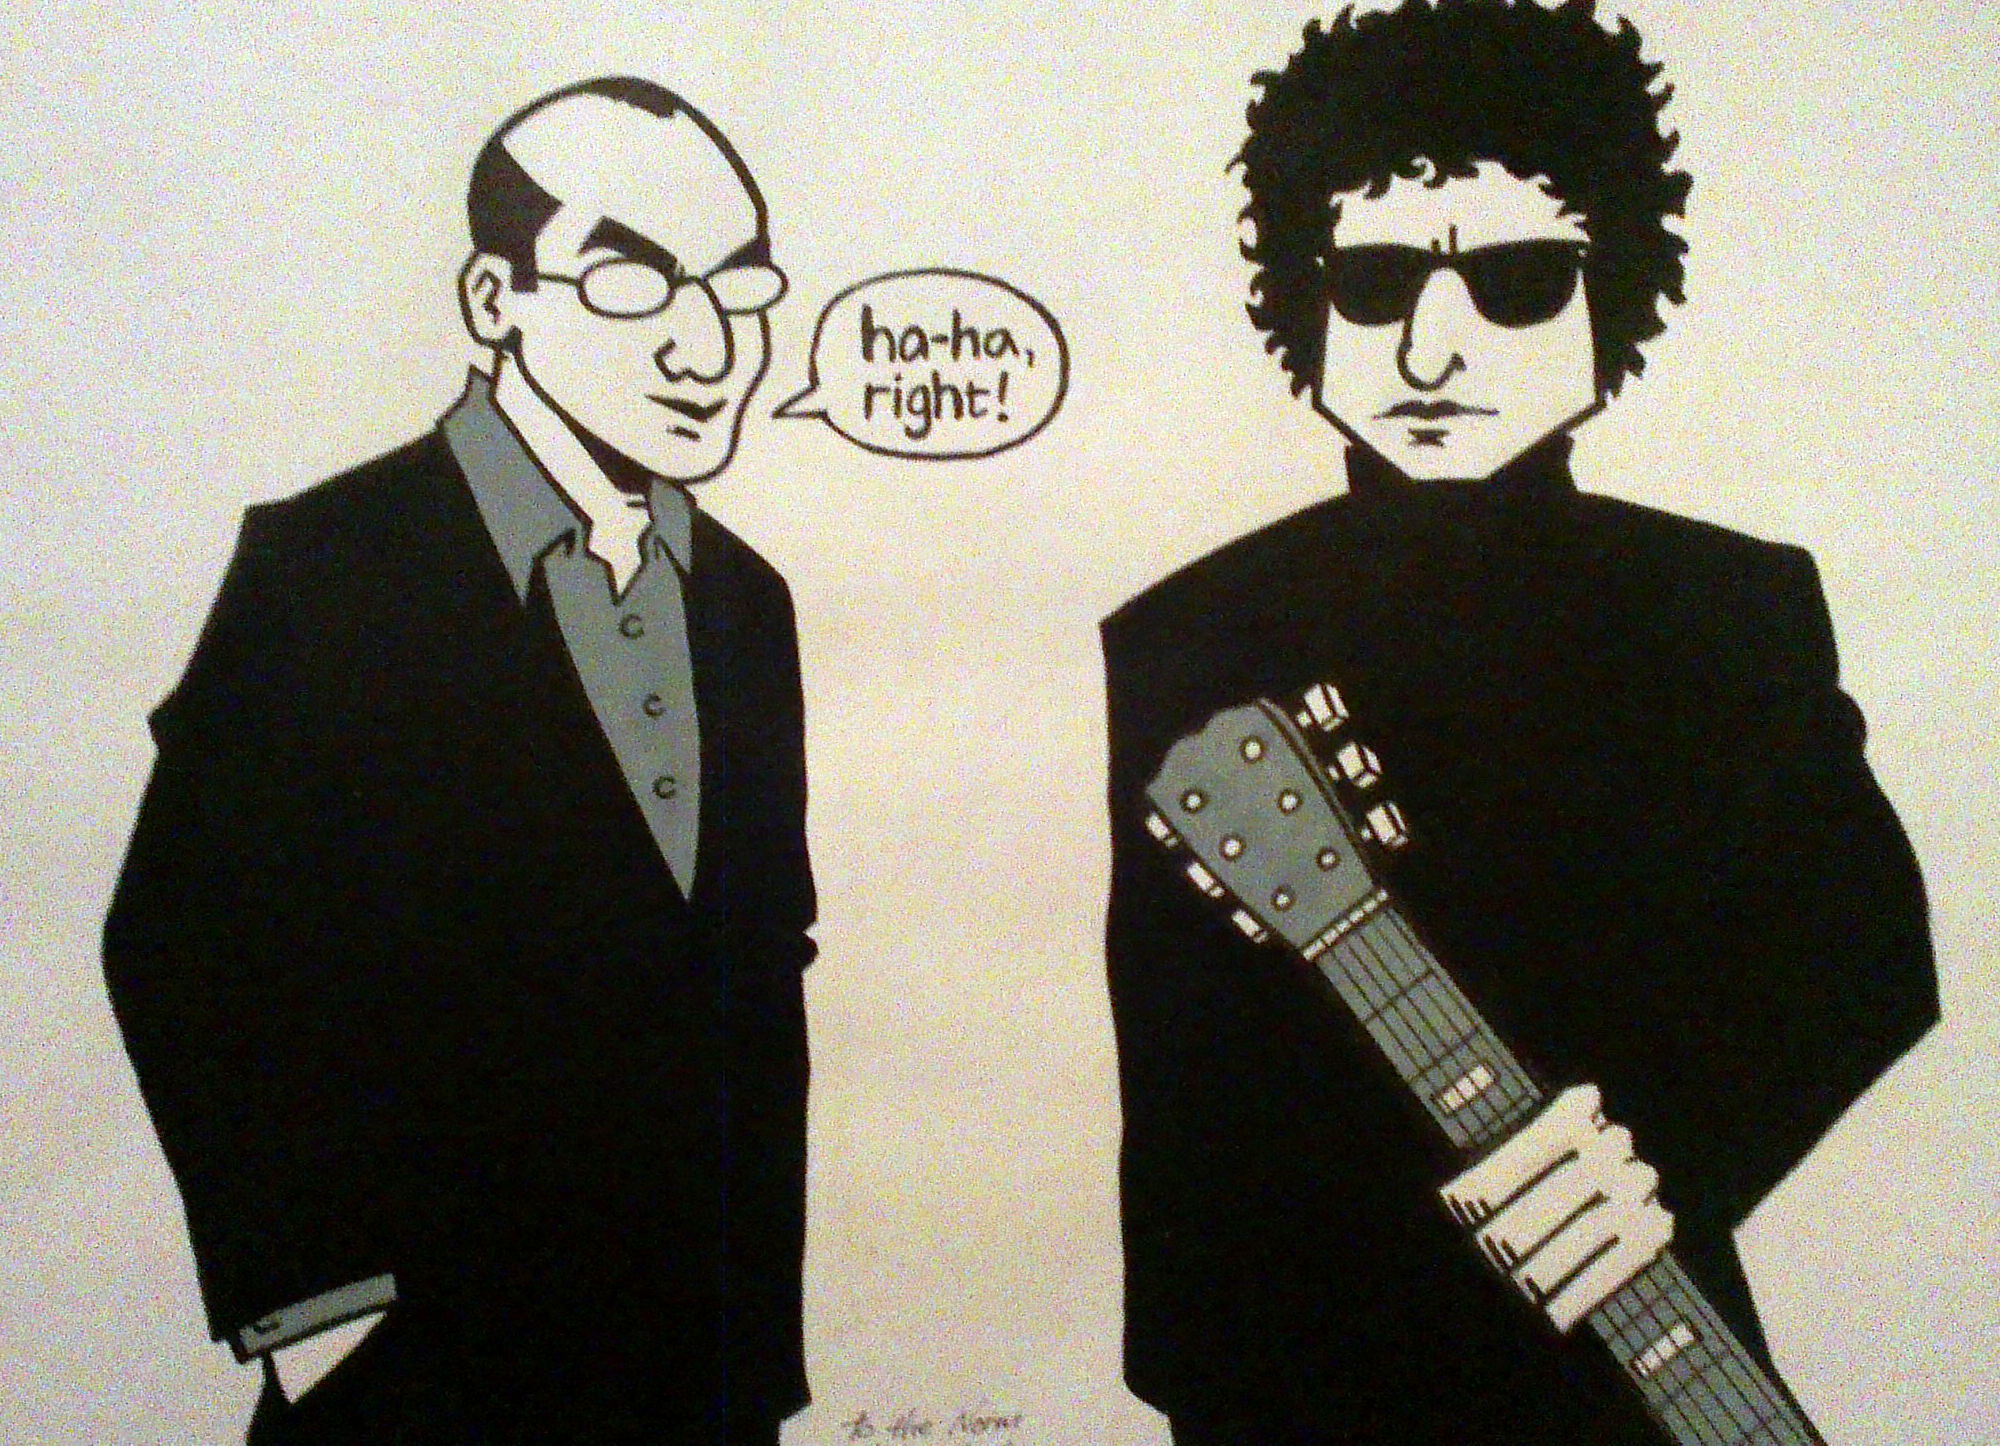 Painting of Norman Lamont and Bob Dylan